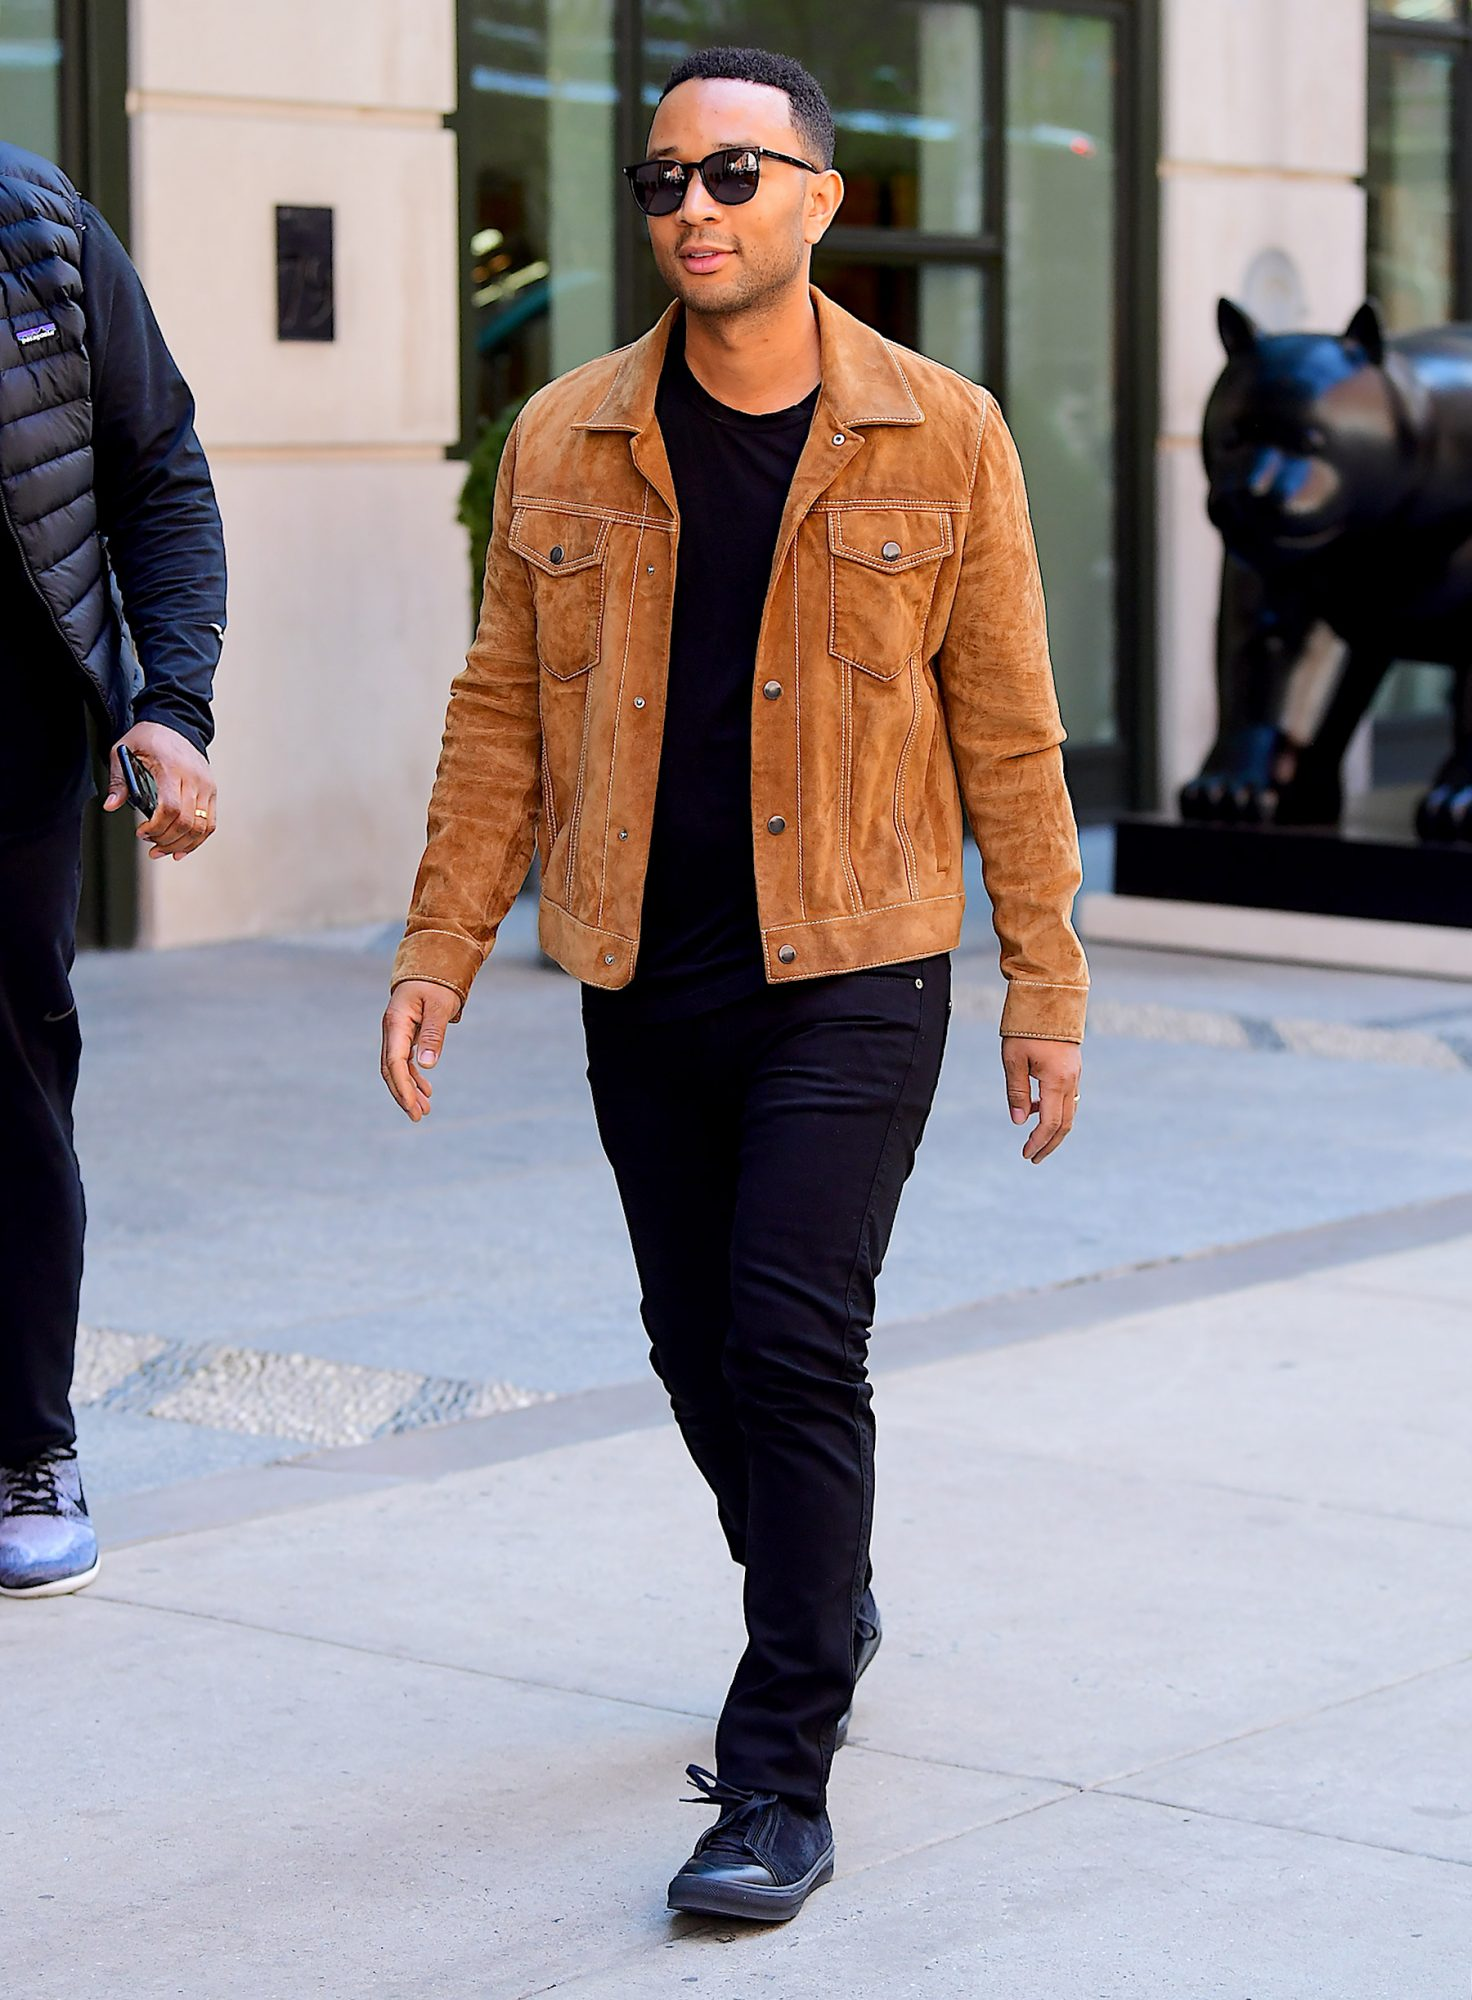 EXCLUSIVE: John Legend Steps Out in NYC Looking Sharp in Western Style Suede Jacket